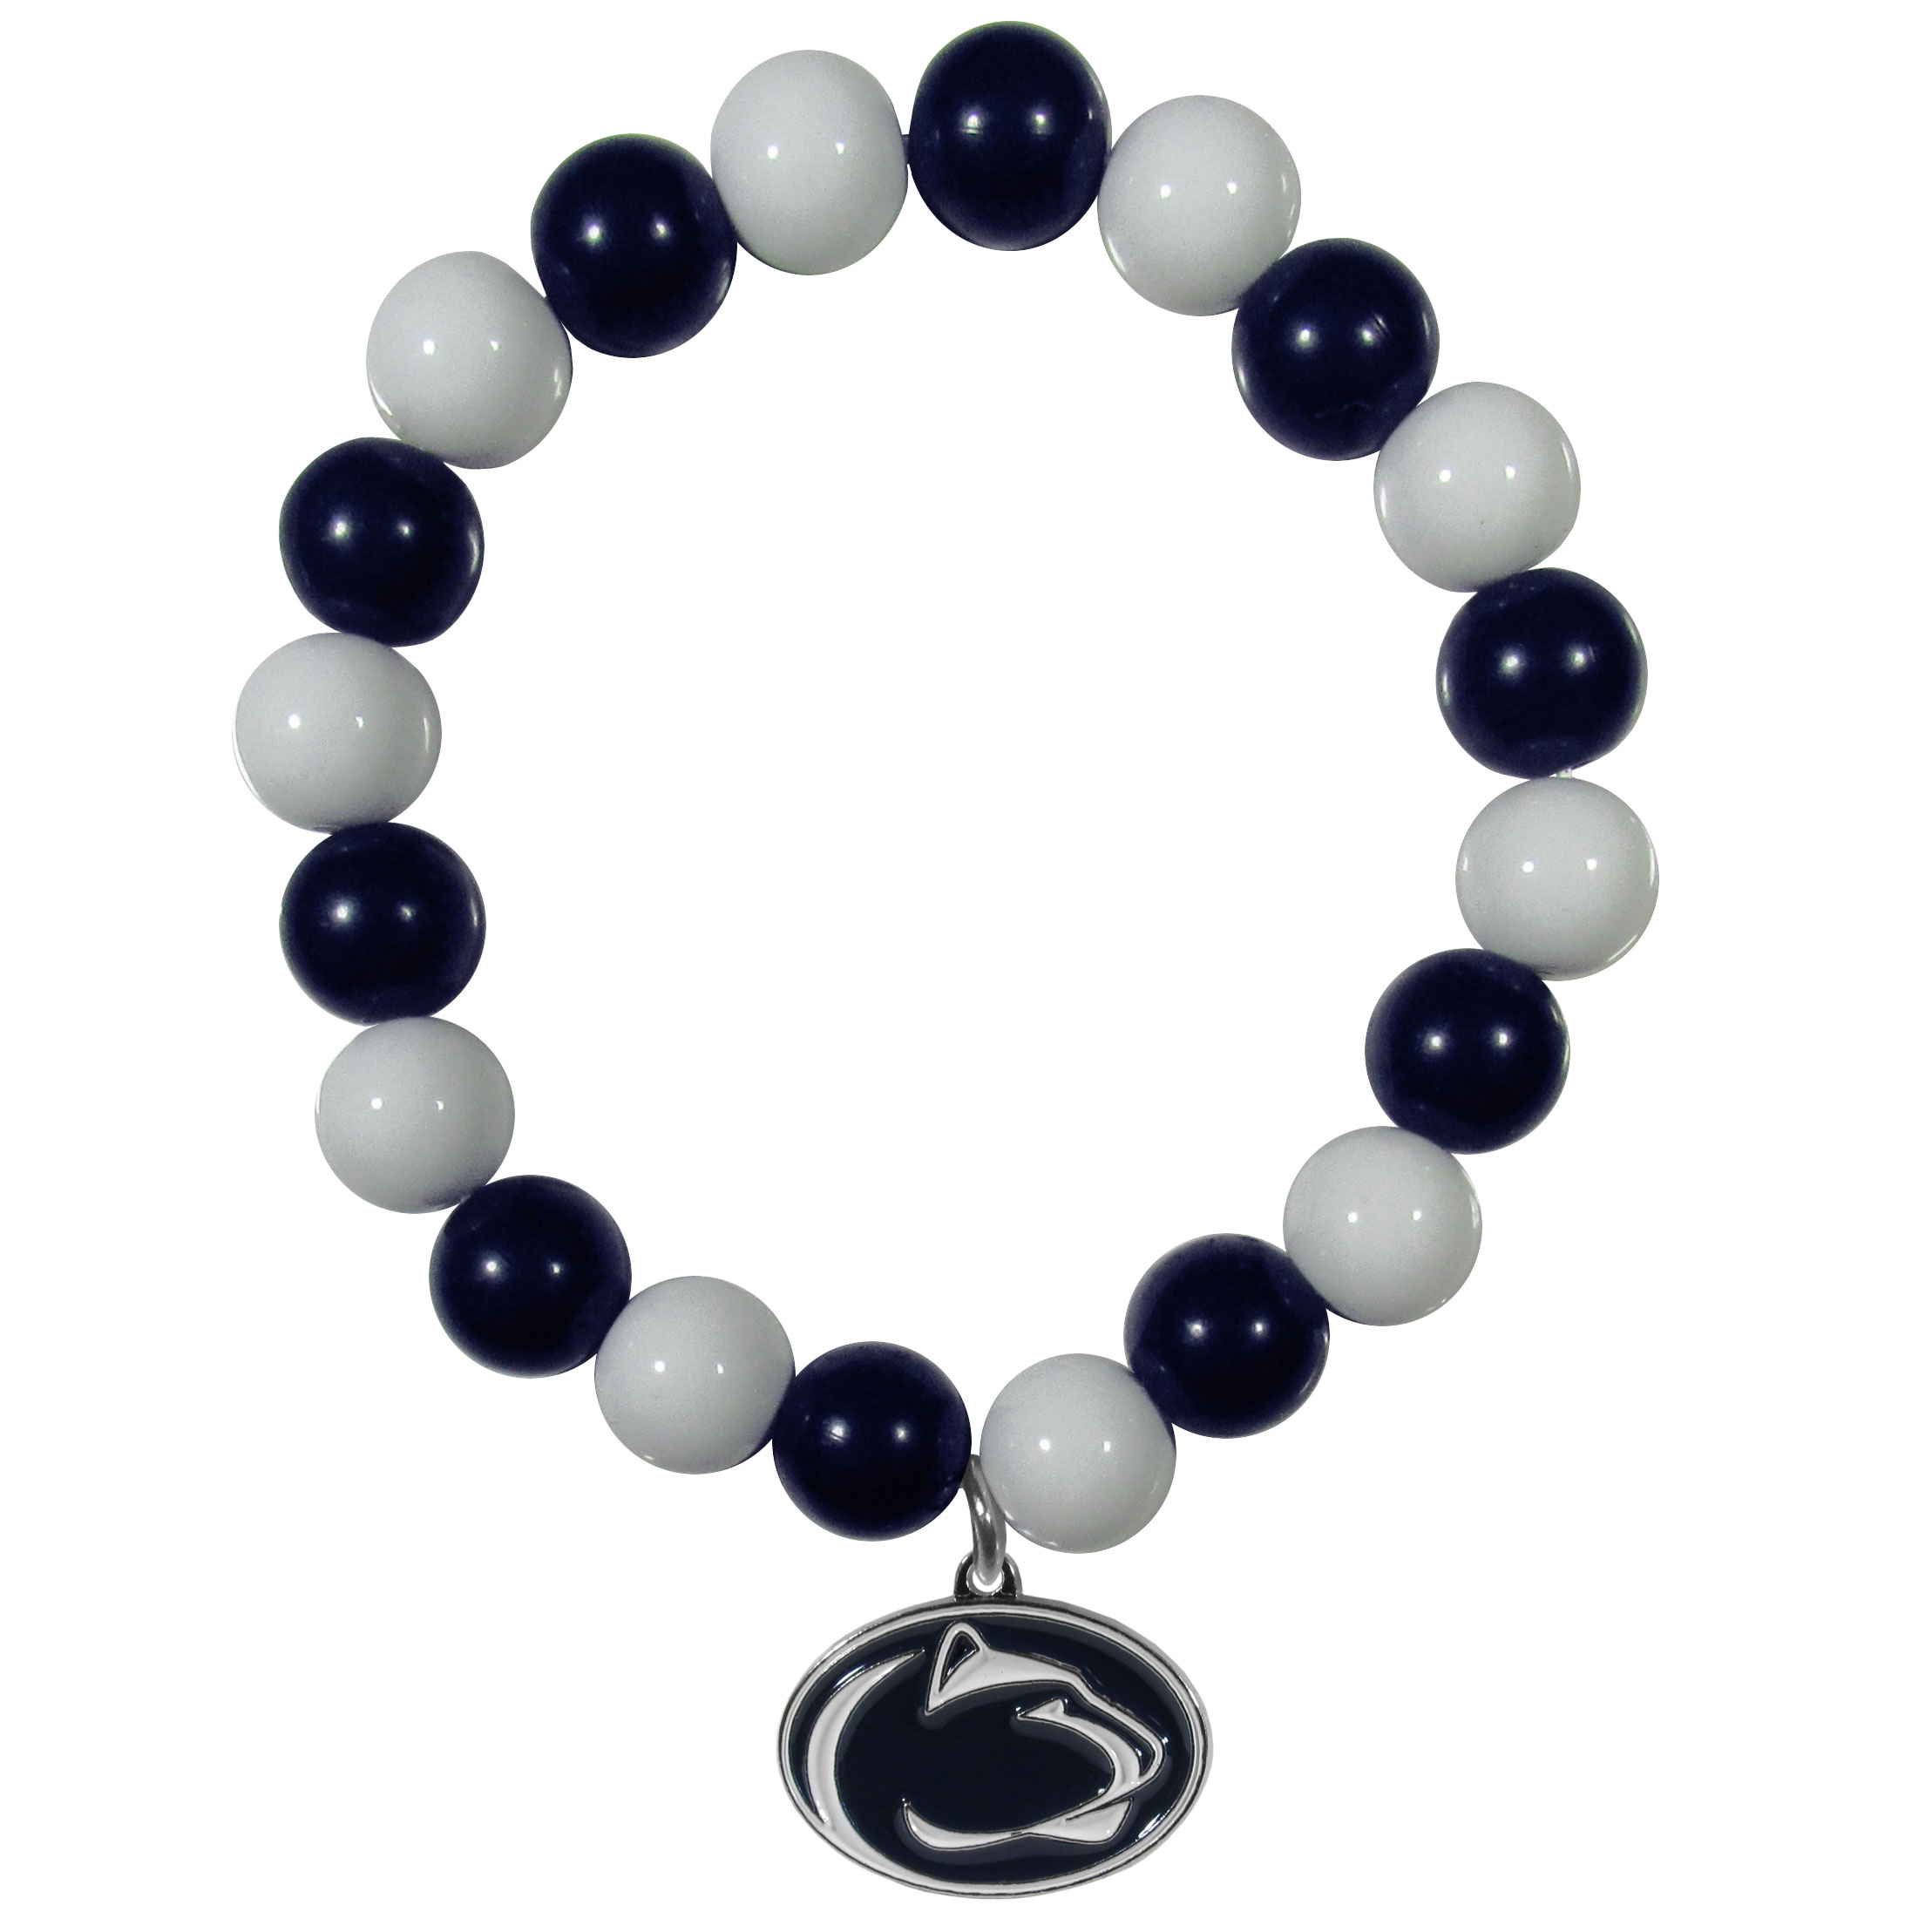 Penn St. Nittany Lions Fan Bead Bracelet - Flash your Penn St. Nittany Lions spirit with this bright stretch bracelet. This new bracelet features multicolored team beads on stretch cord with a nickel-free enameled chrome team charm. This bracelet adds the perfect pop of color to your game day accessories.